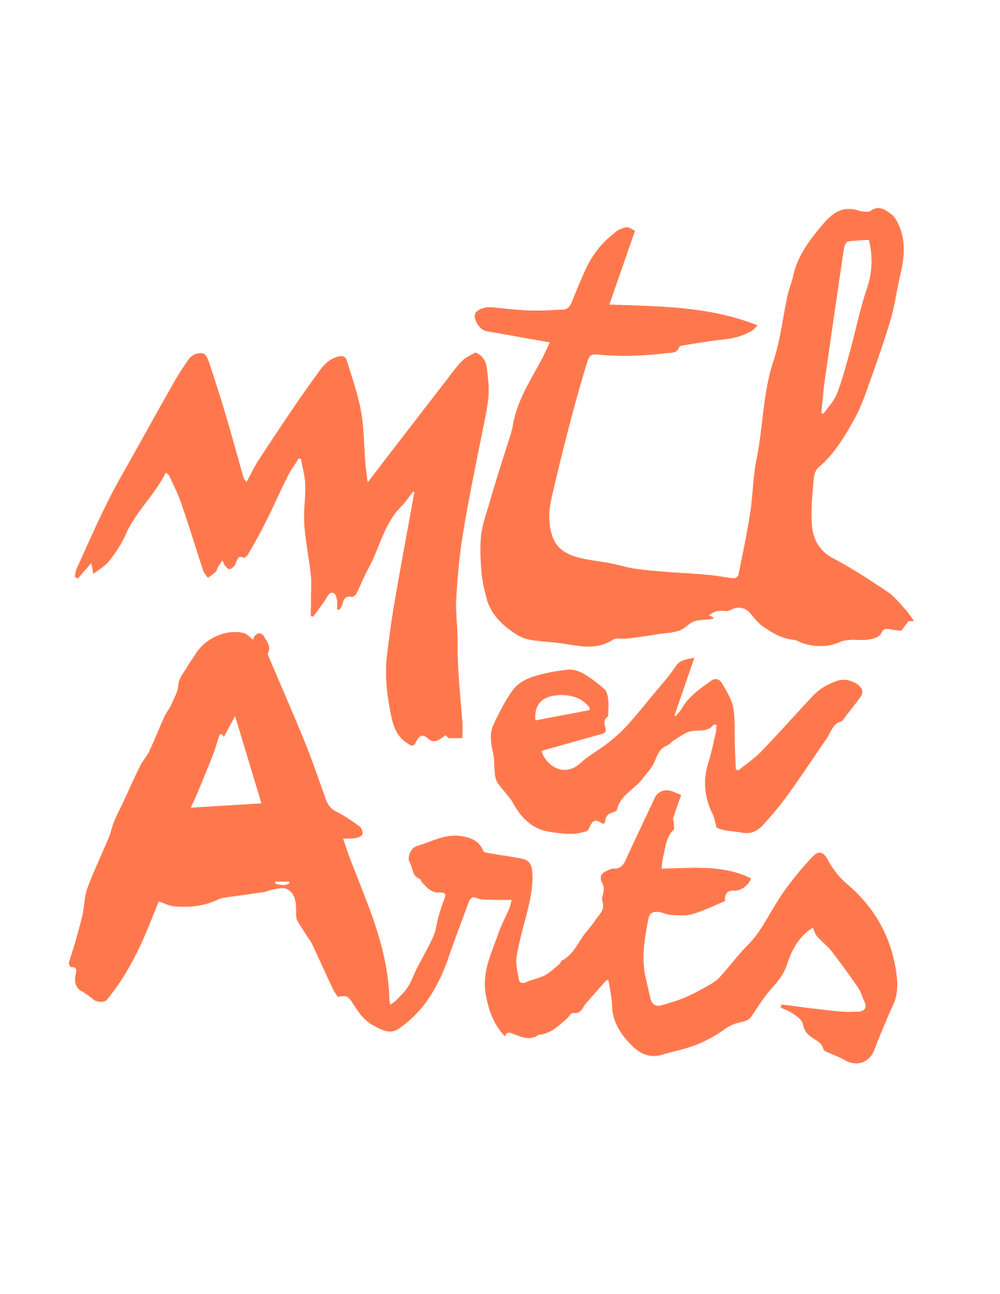 Logo-Mtl-en-Arts-ORANGE-jpeg-1.jpg